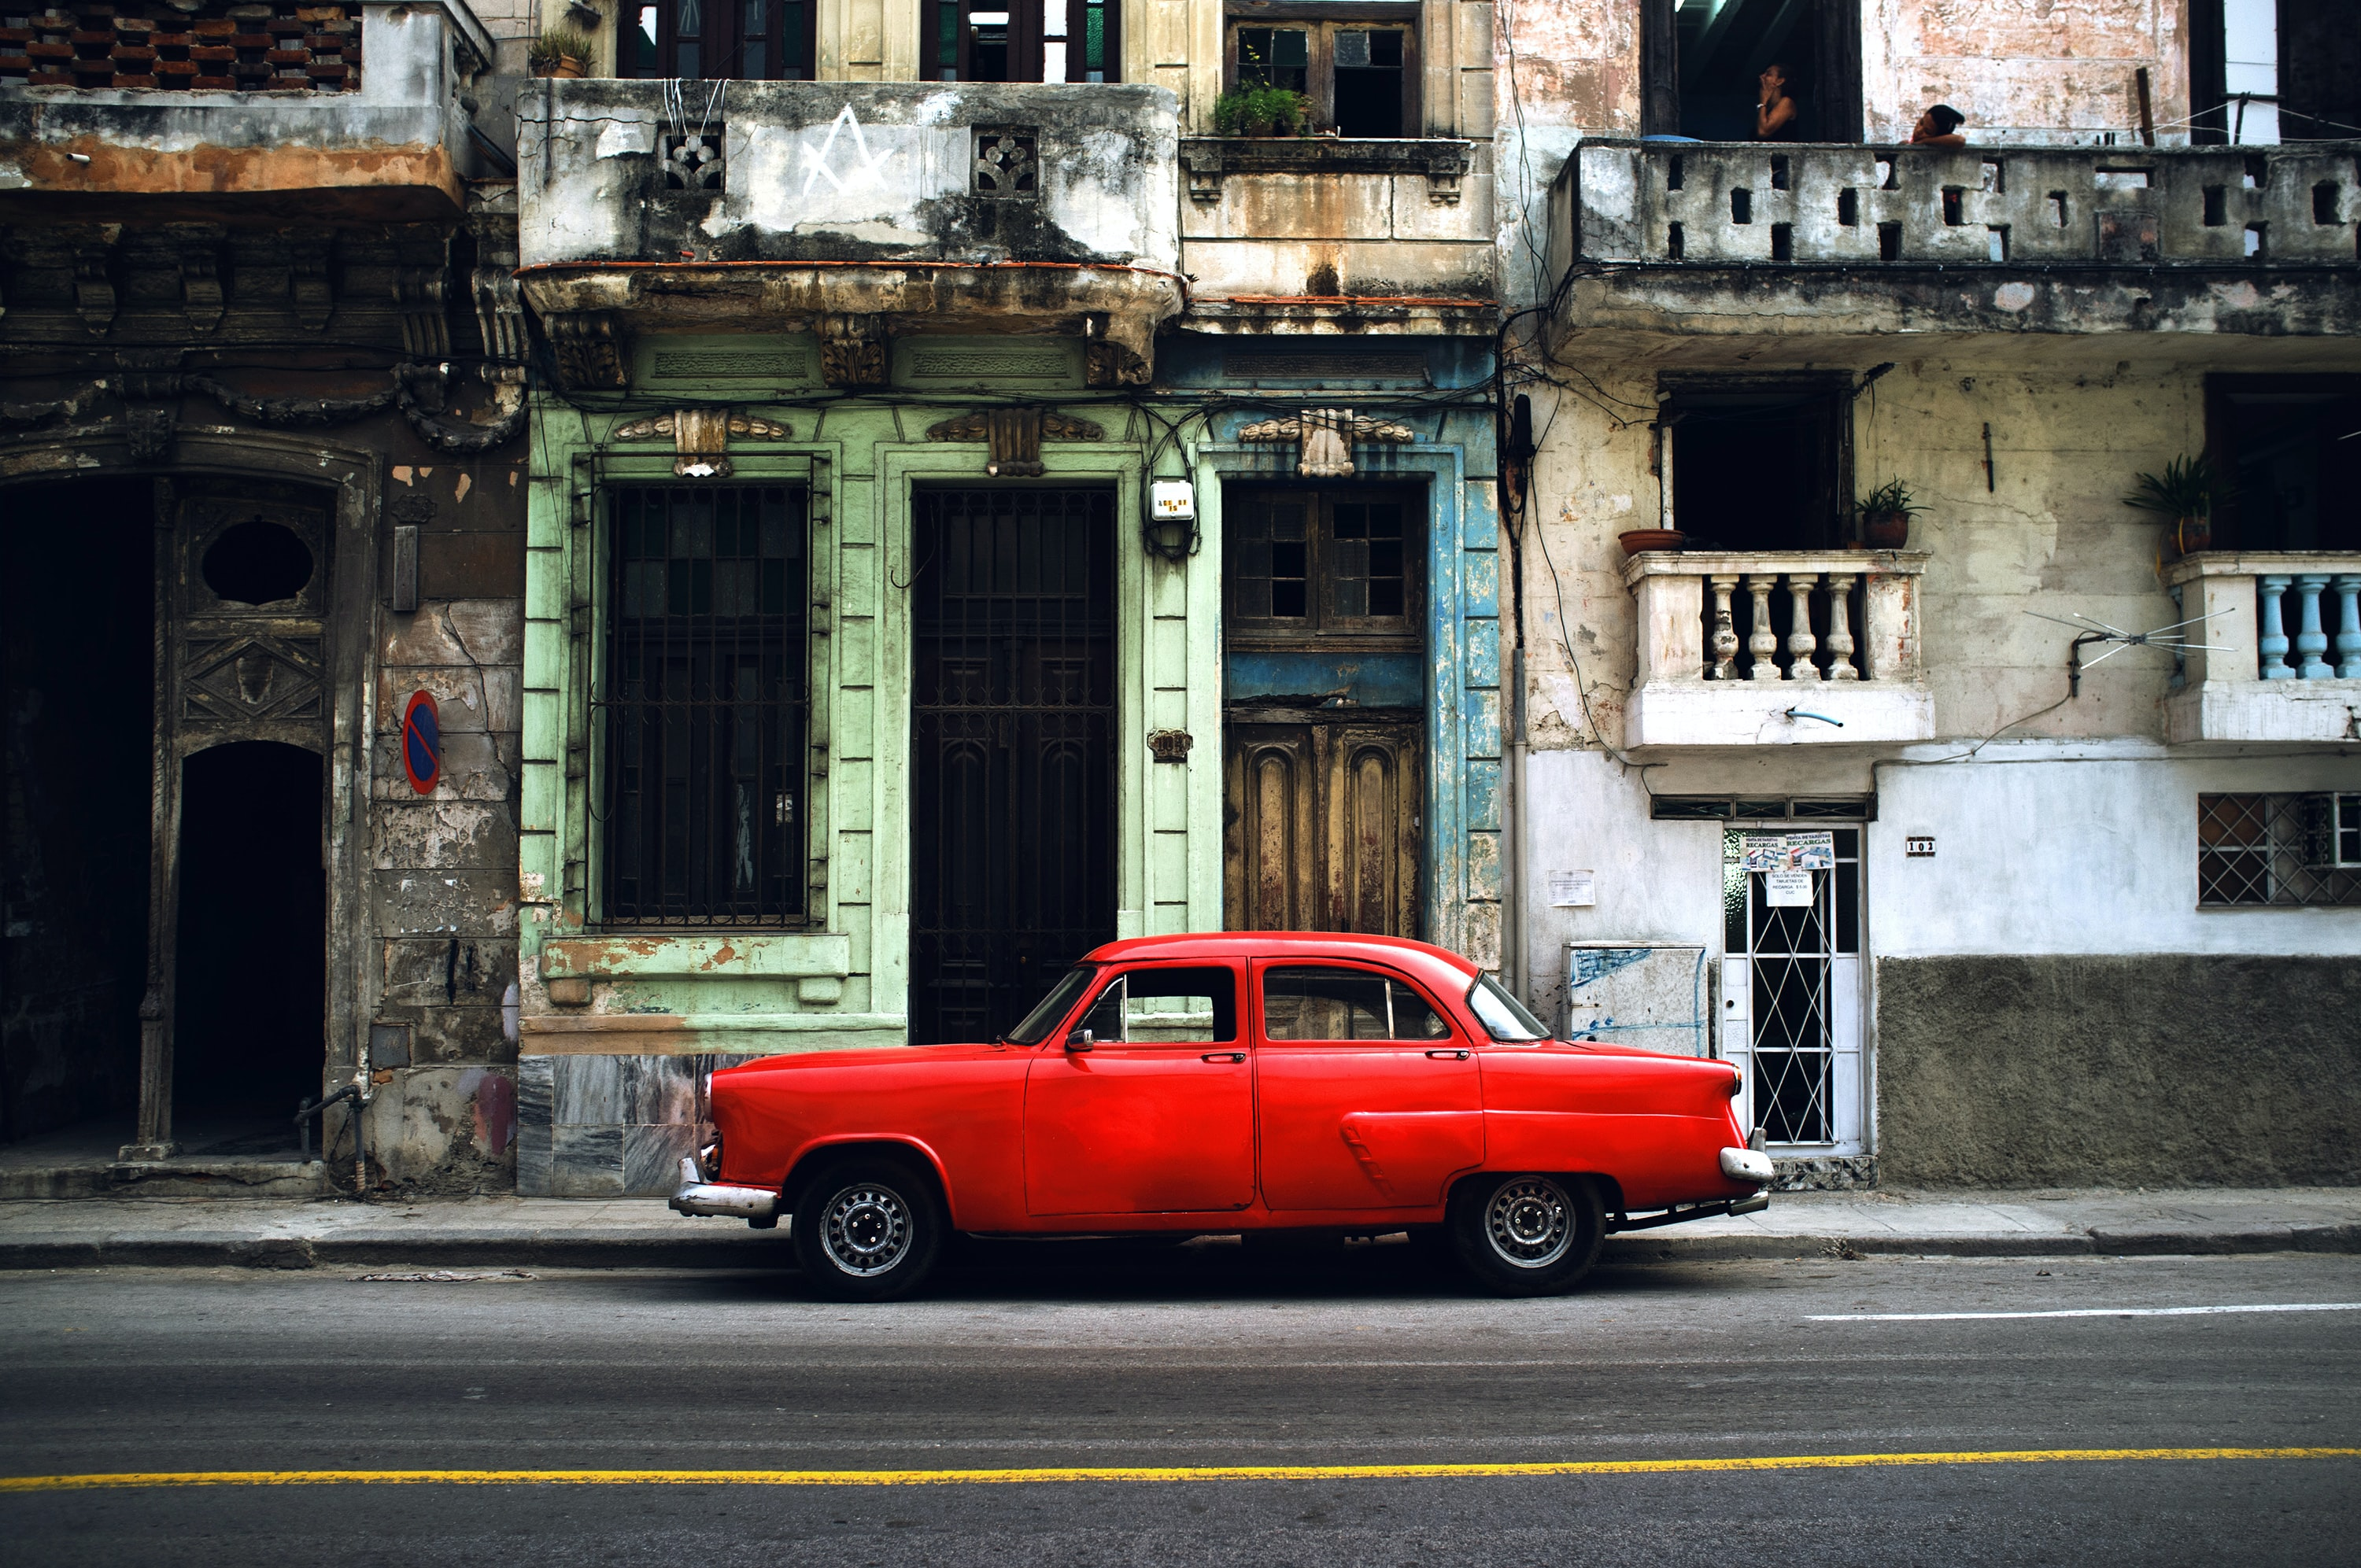 red car parked on road in front concrete building